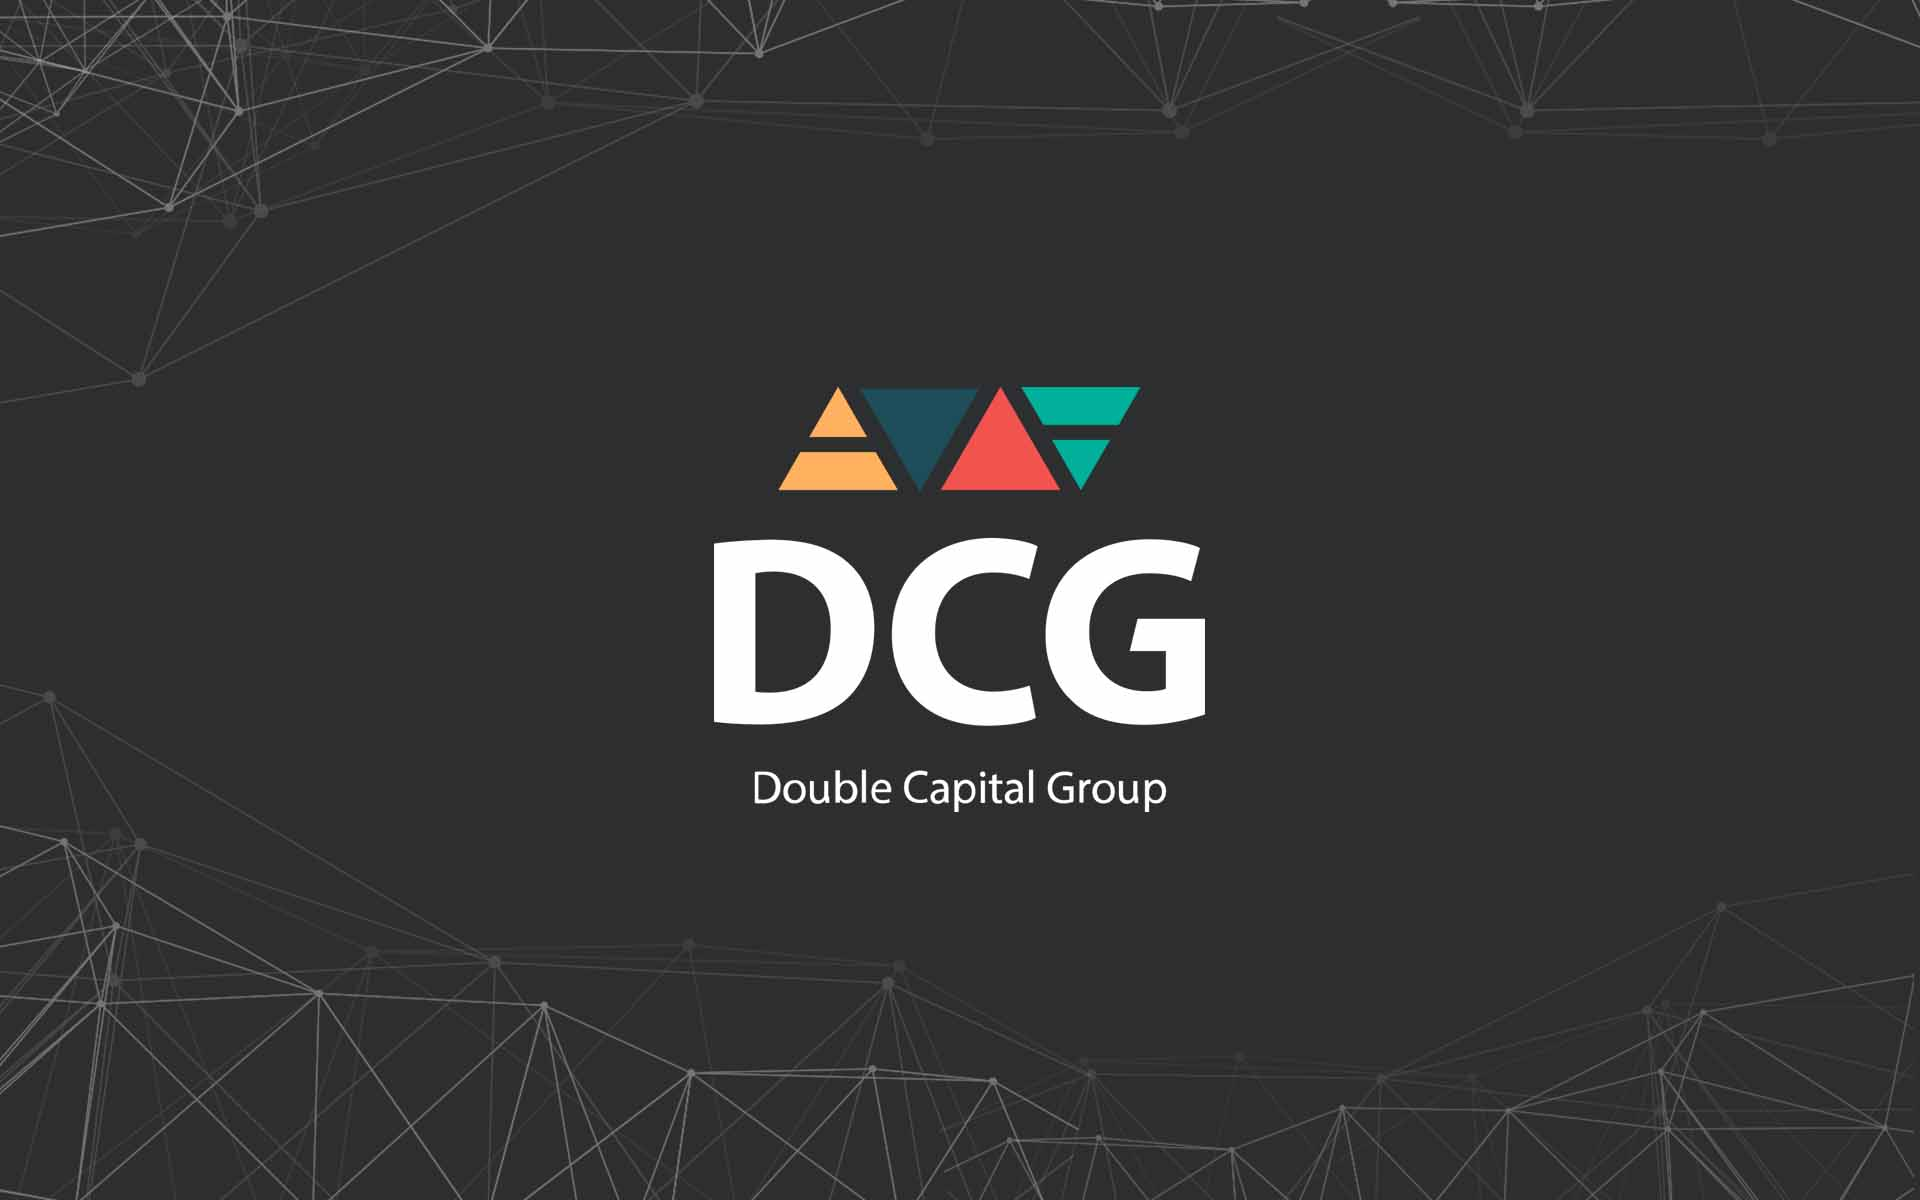 Double Capital Group Launches World's First Cryptocurrency Indexation and Analysis Service